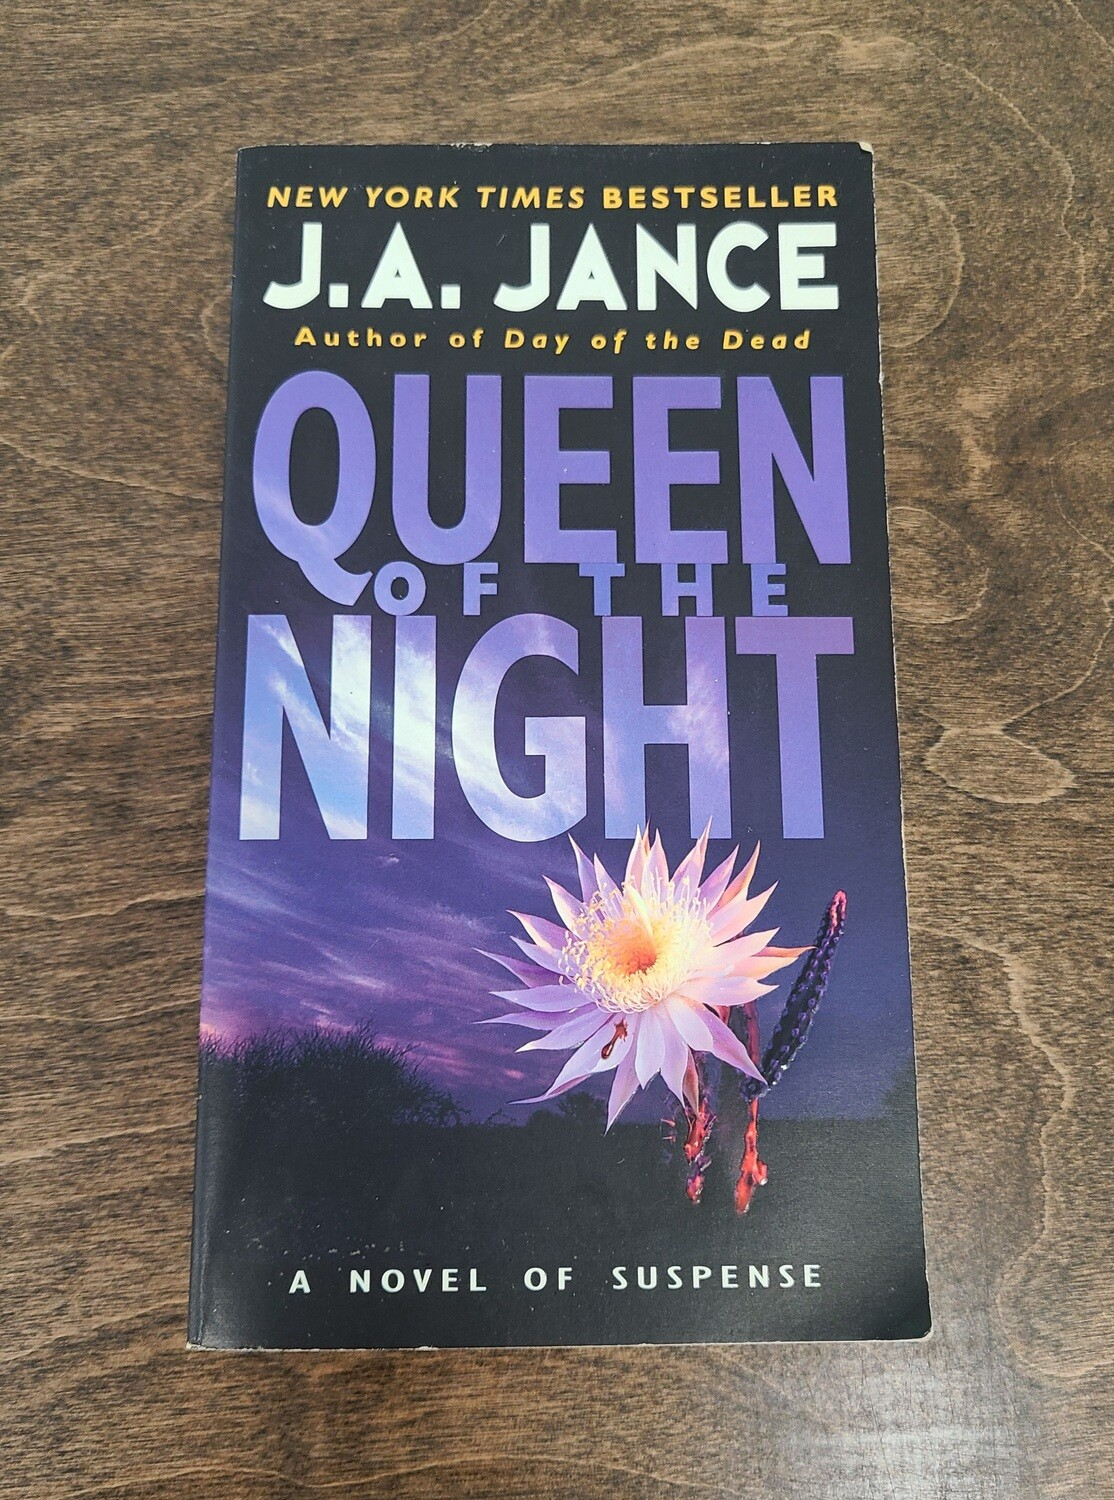 Queen of the Night by J.A. Jance